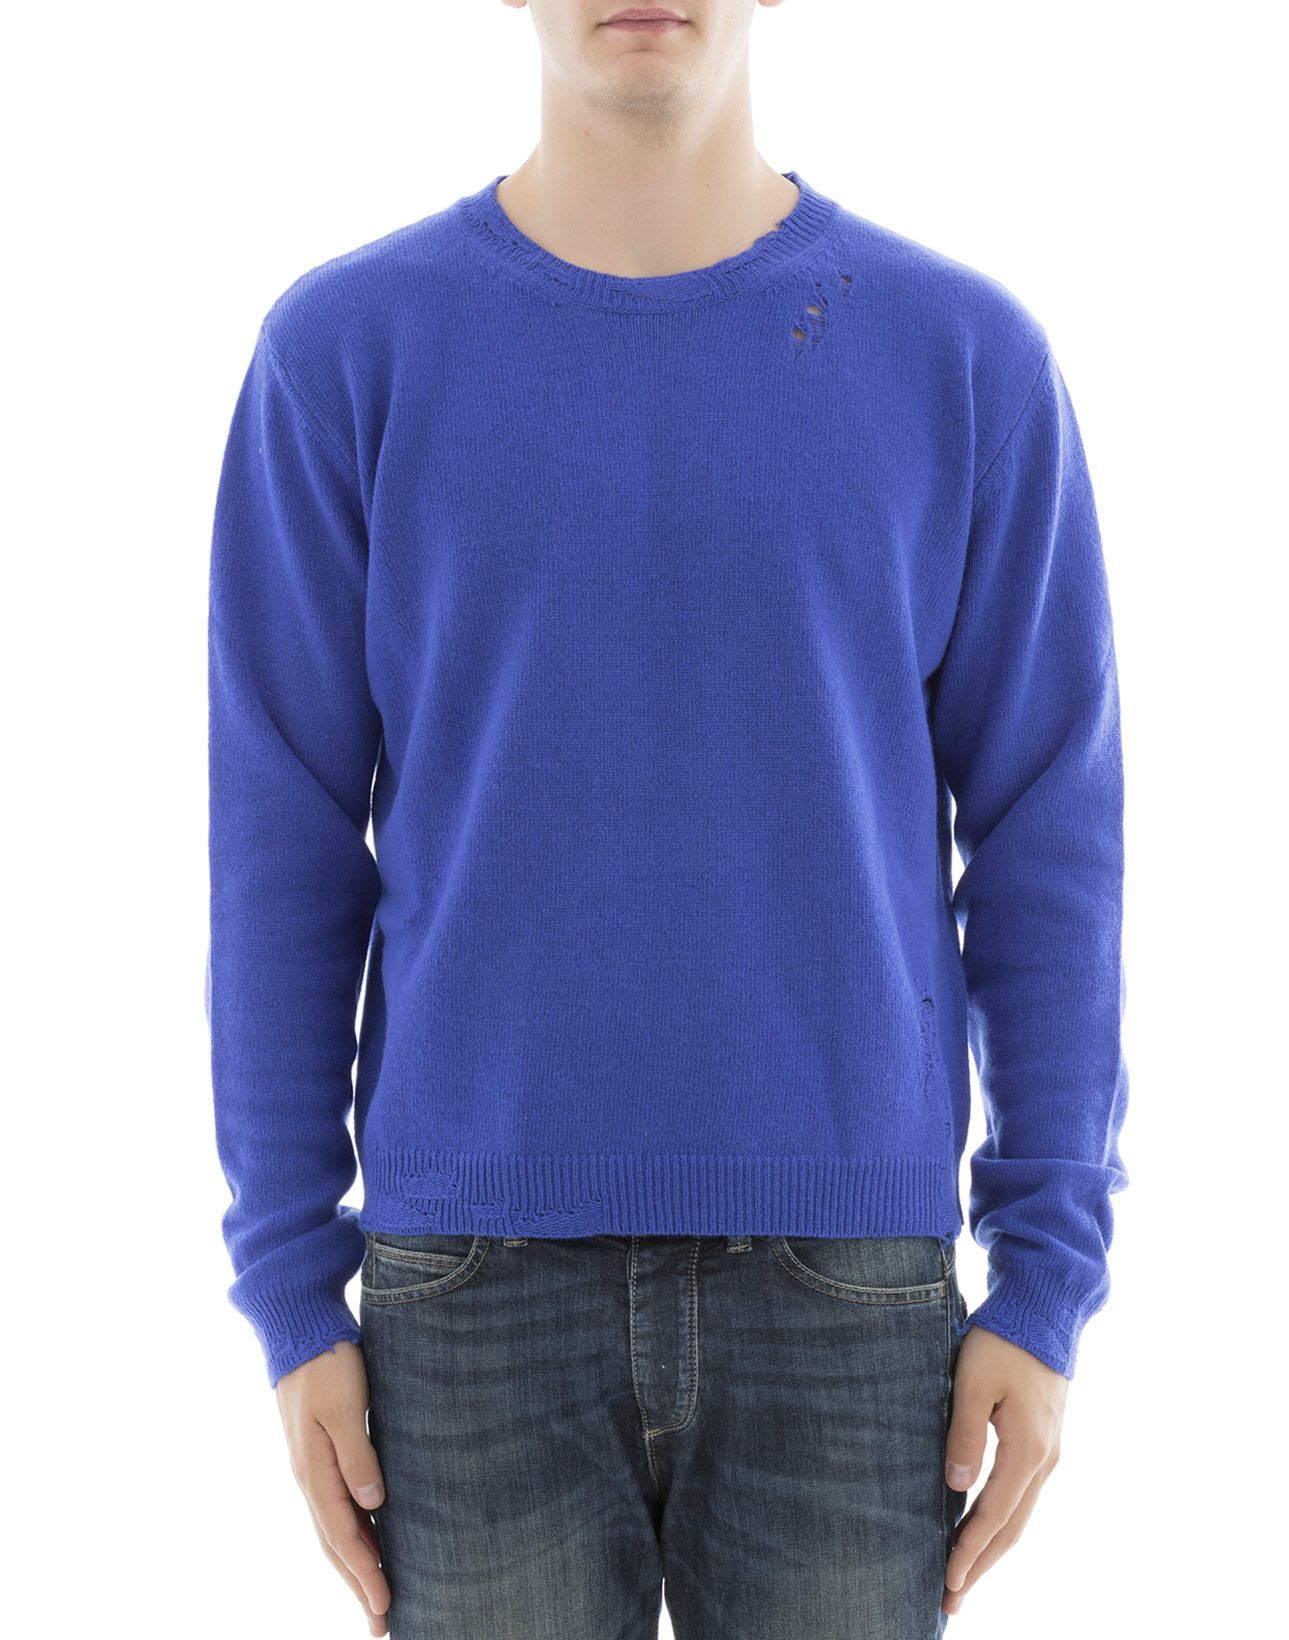 Blue Wool Sweatshirt